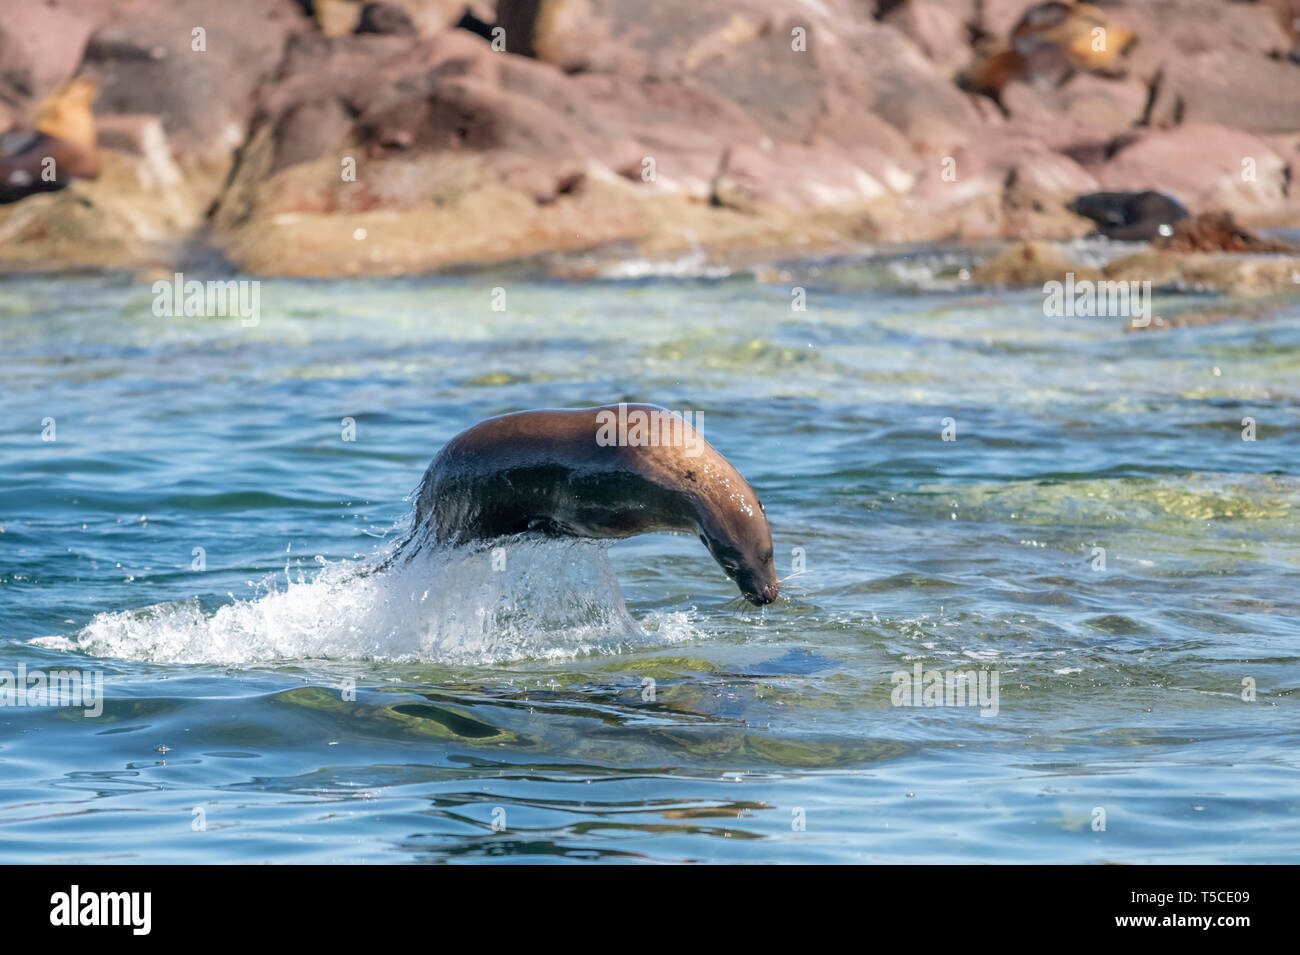 California Sea Lion (Zalophus californianus) leaping out of the water at Los Islotes, Baja California, Mexico. - Stock Image